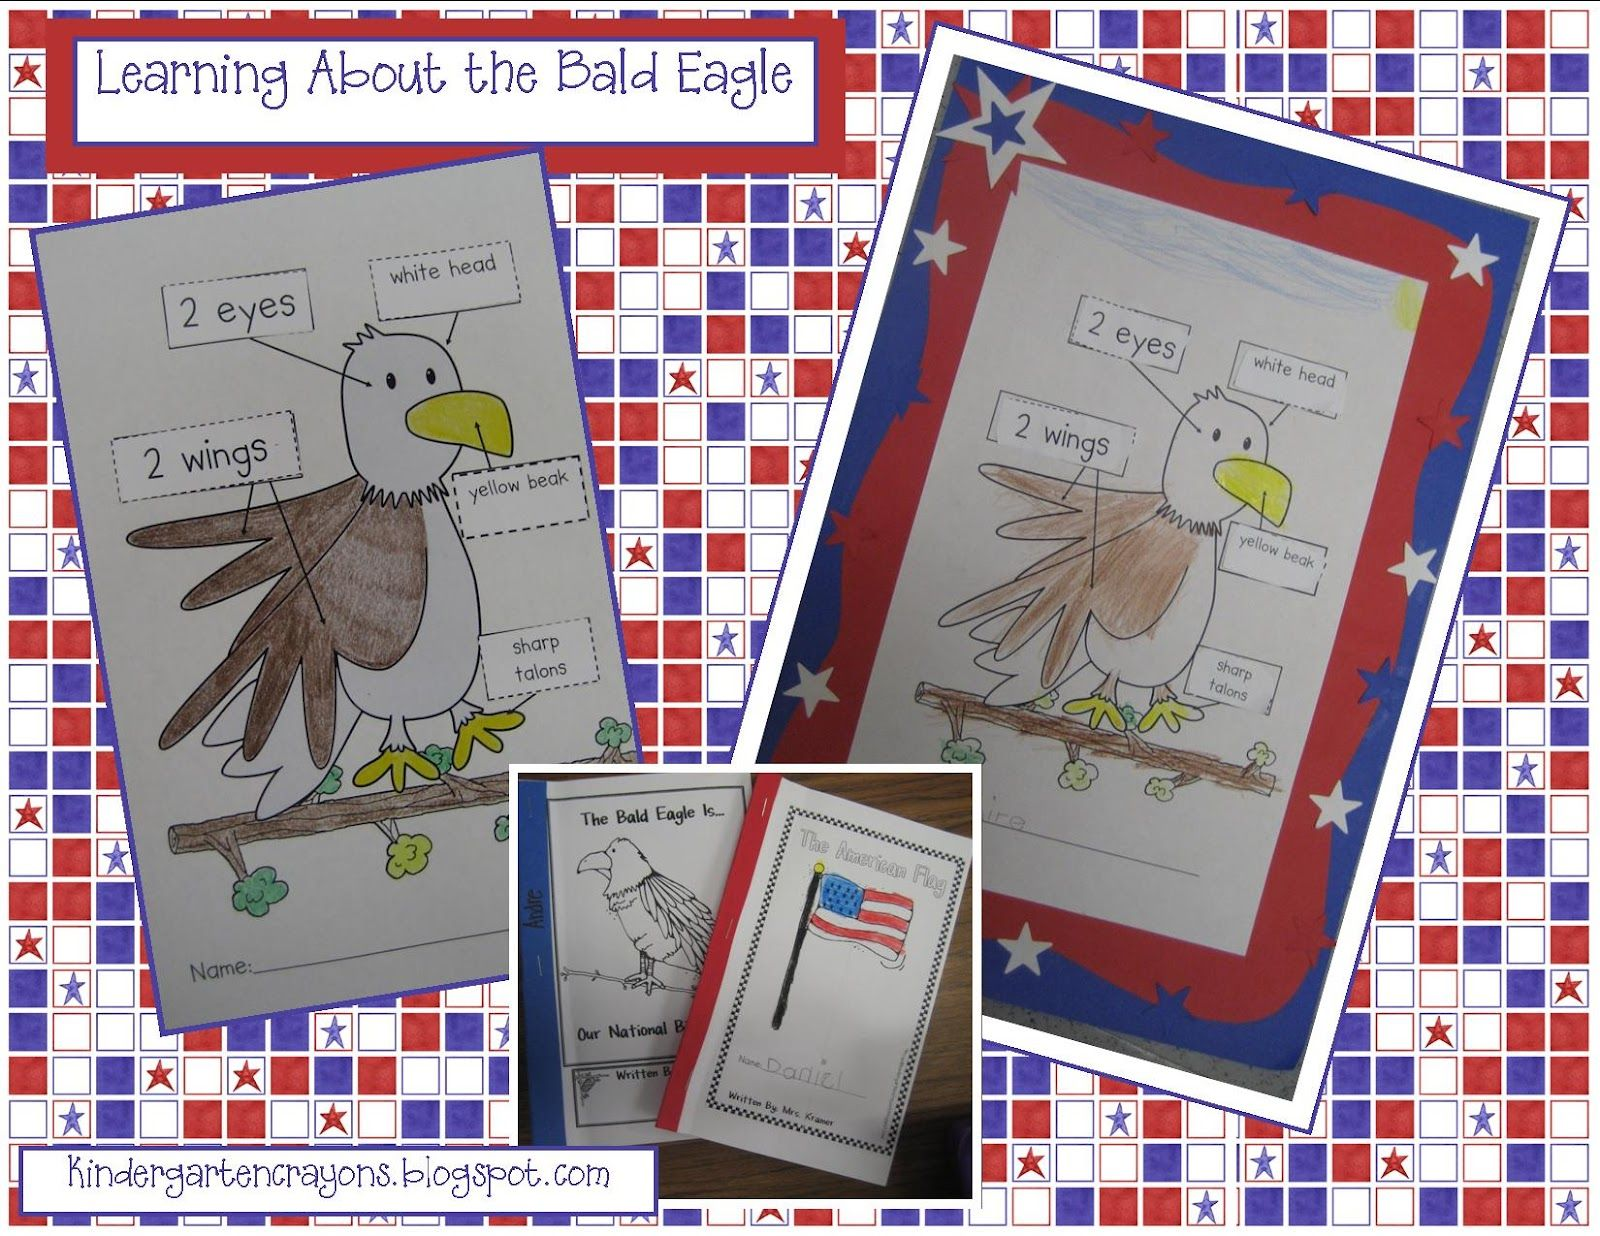 Kindergarten Crayons Bald Eagle